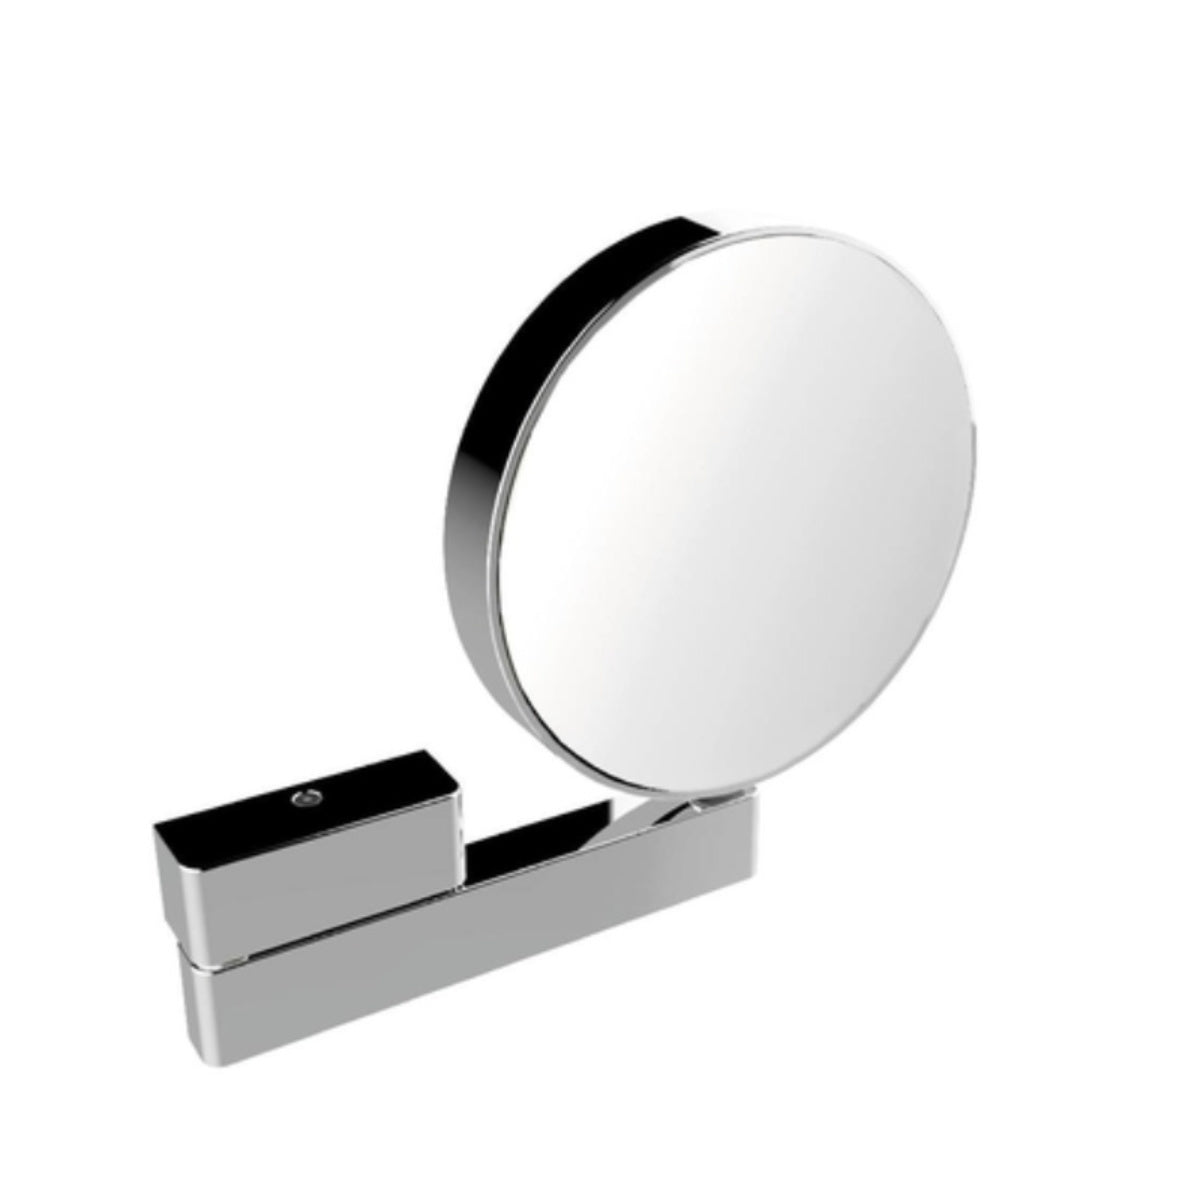 Emco Dual Magnification Mirror, 3x + 7x (INTRO OFFER)